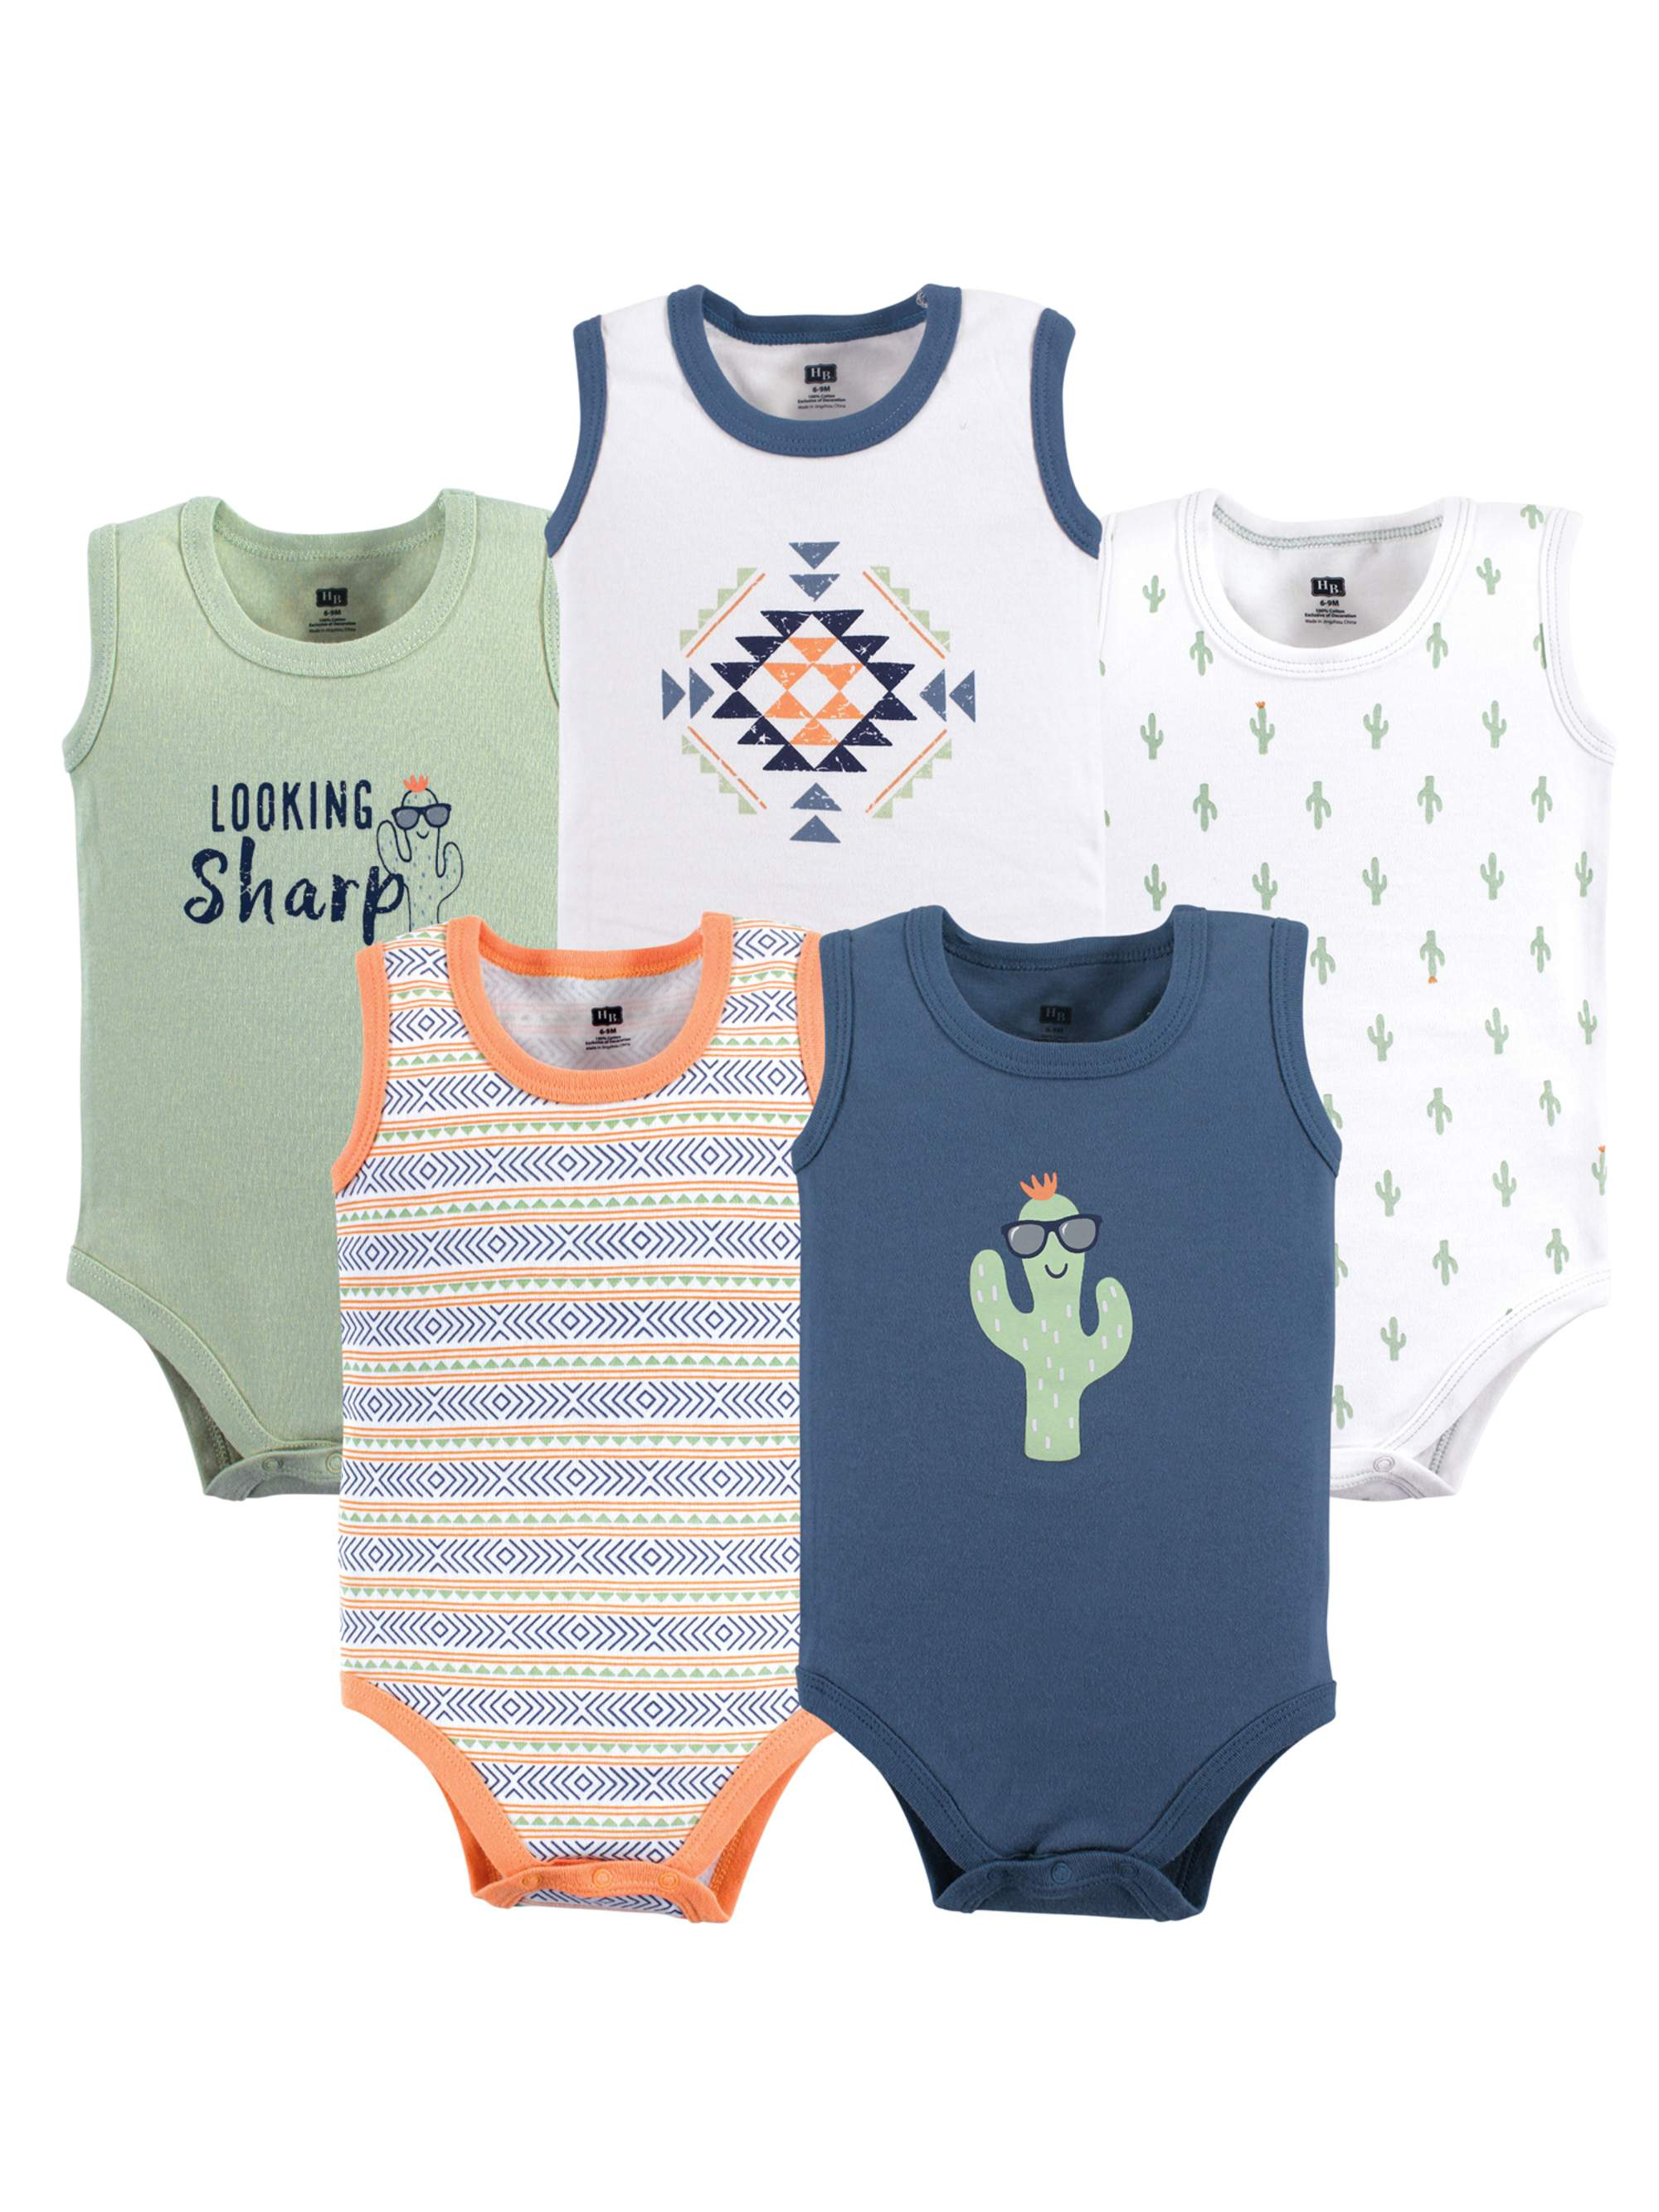 5-Pack Hudson Baby Boy Sleeveless Bodysuits Whale